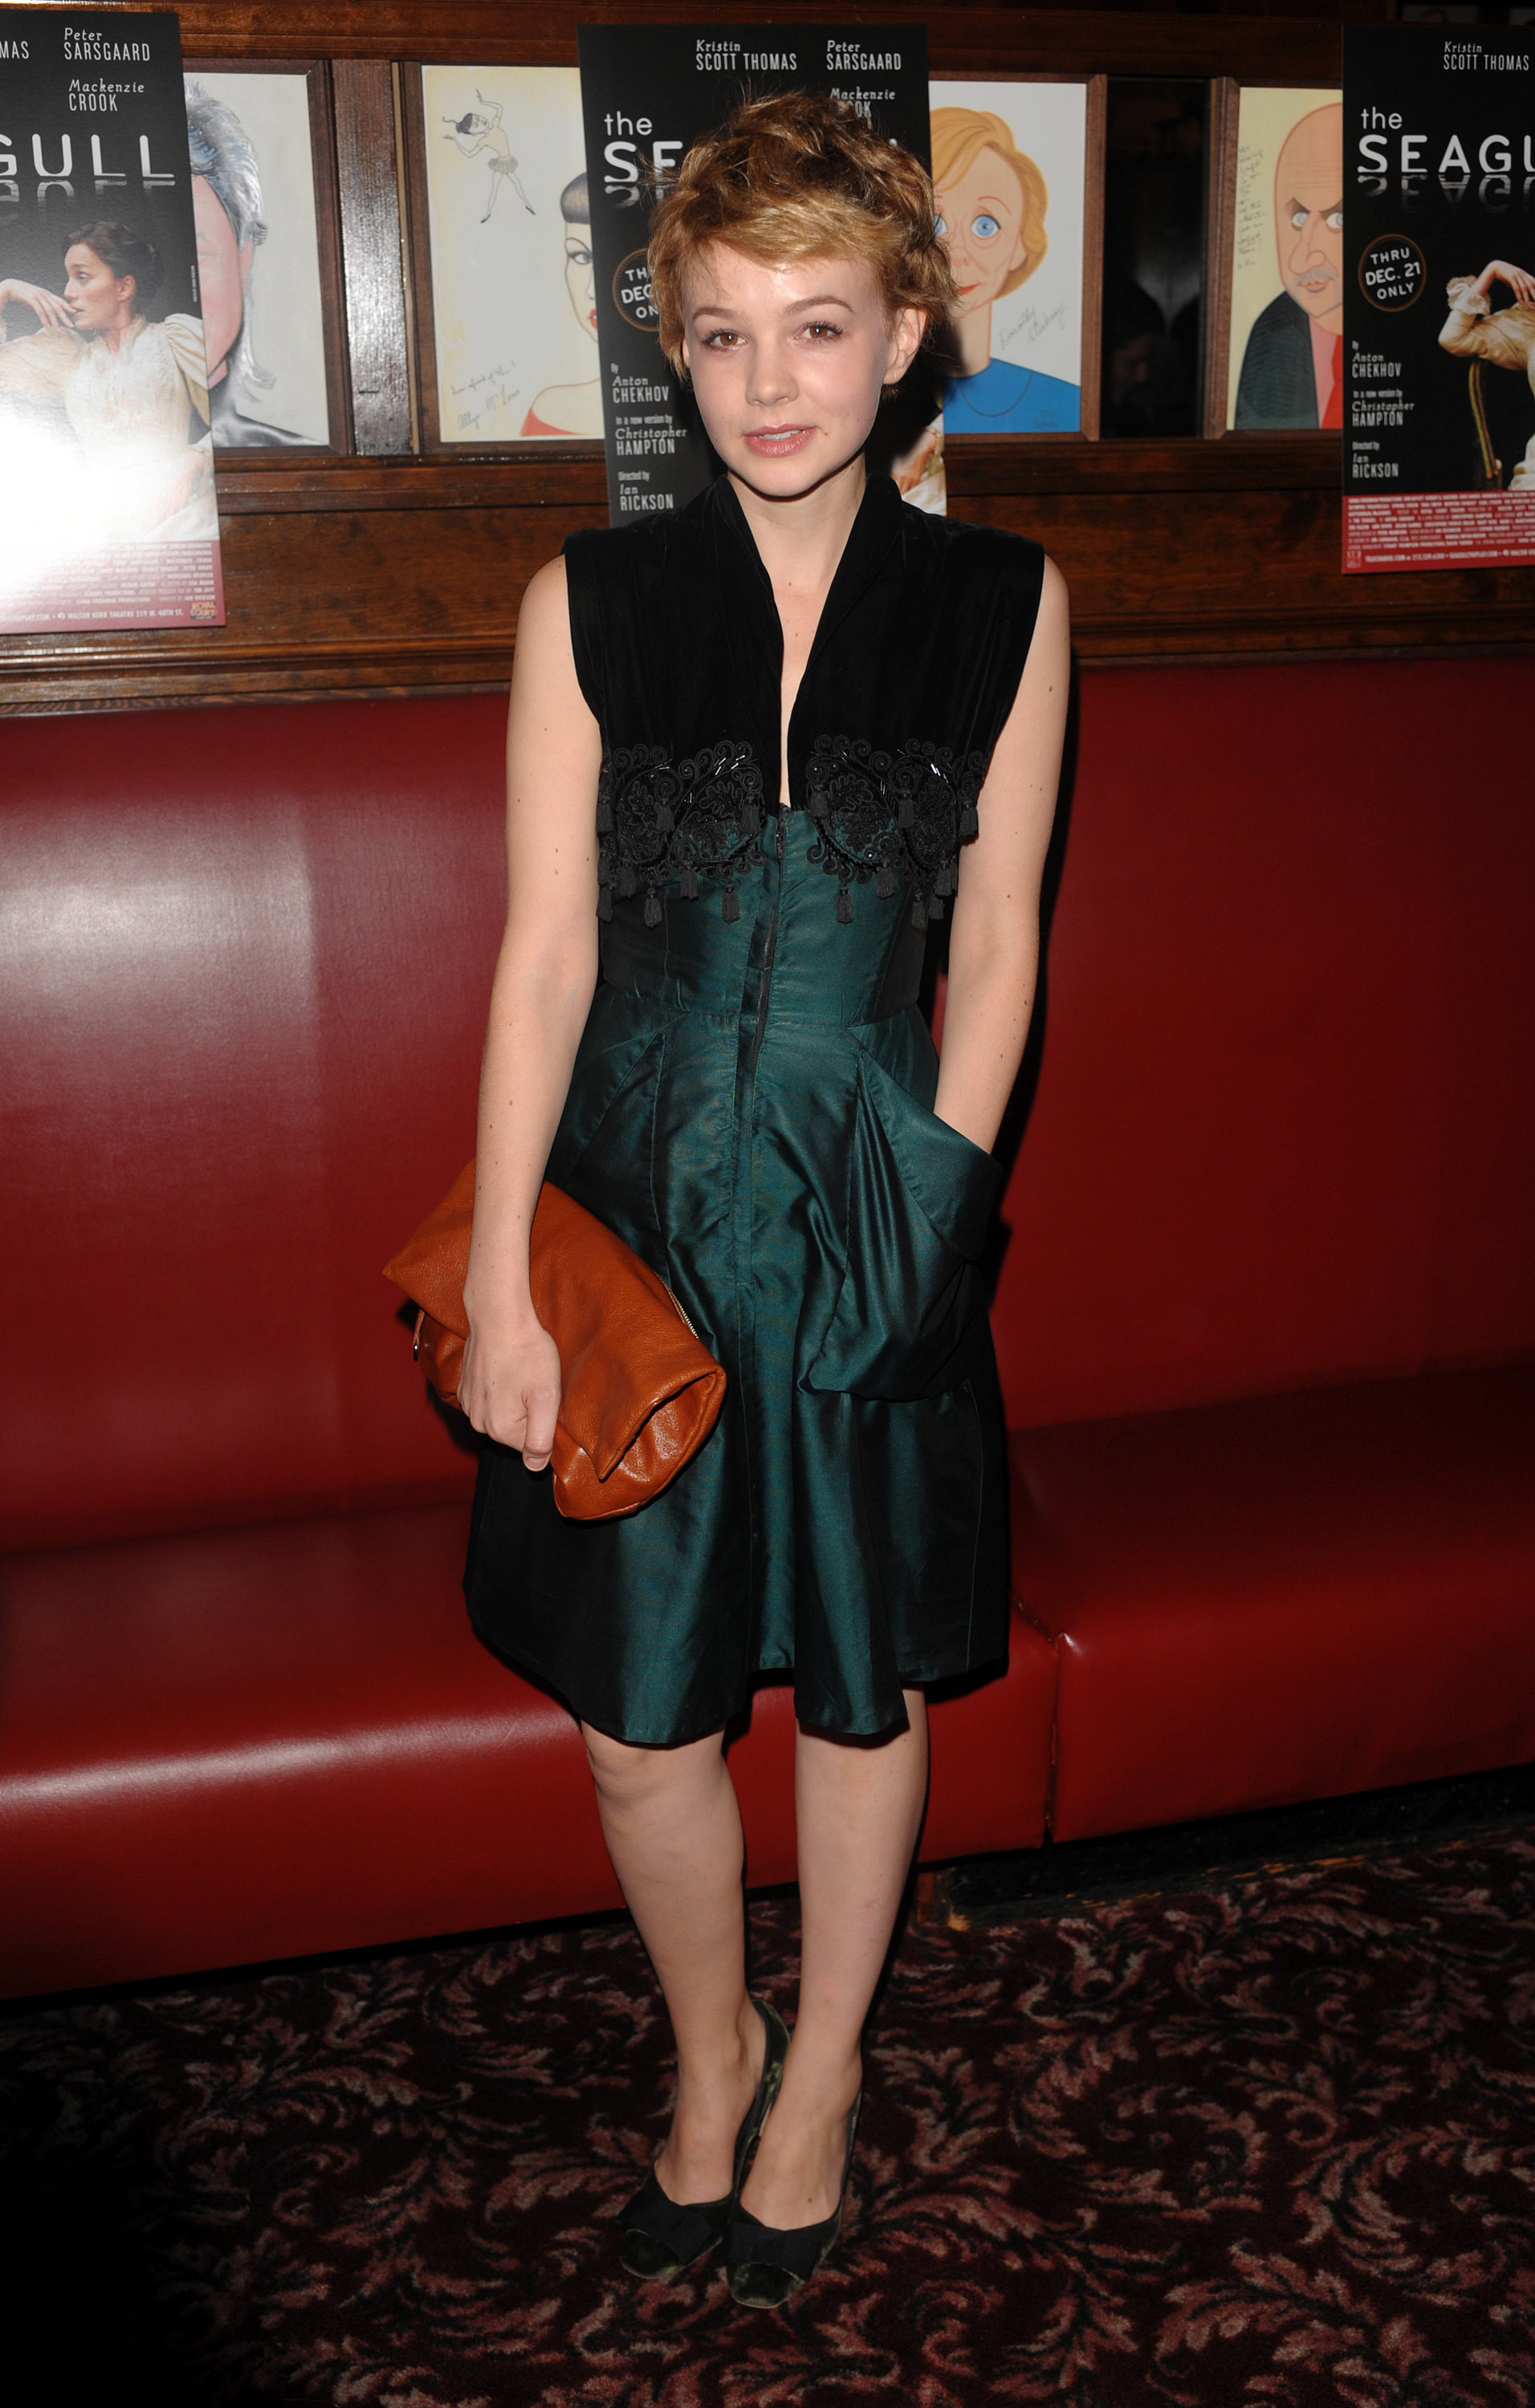 carey mulligan seagull opening night dress